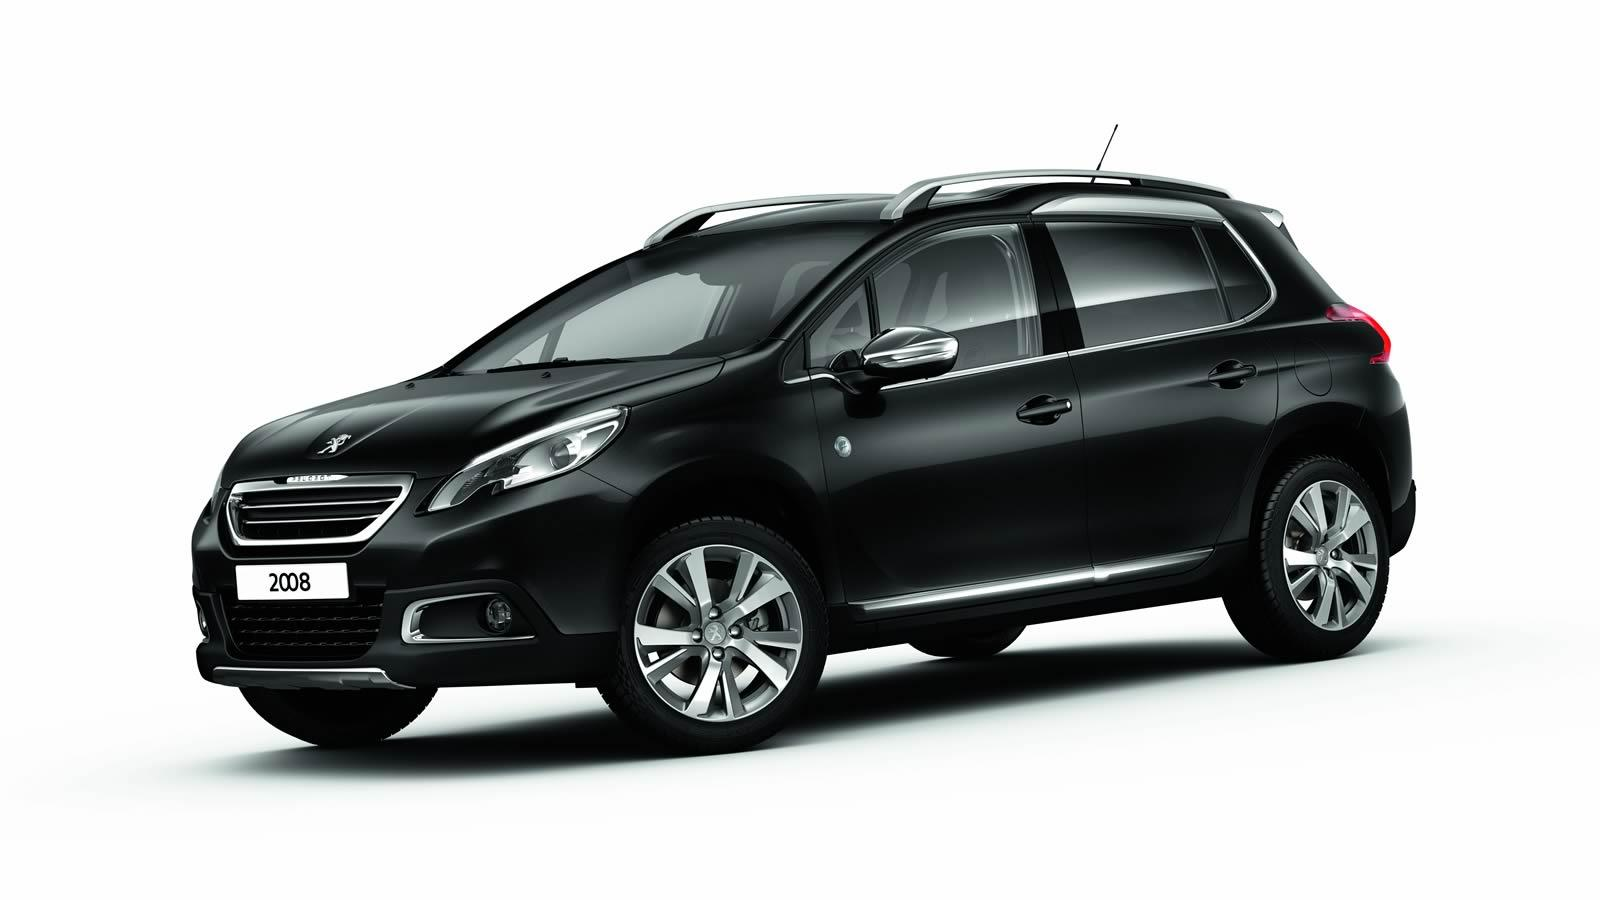 peugeot 2008 3008 crossway special editions unveiled autoevolution. Black Bedroom Furniture Sets. Home Design Ideas